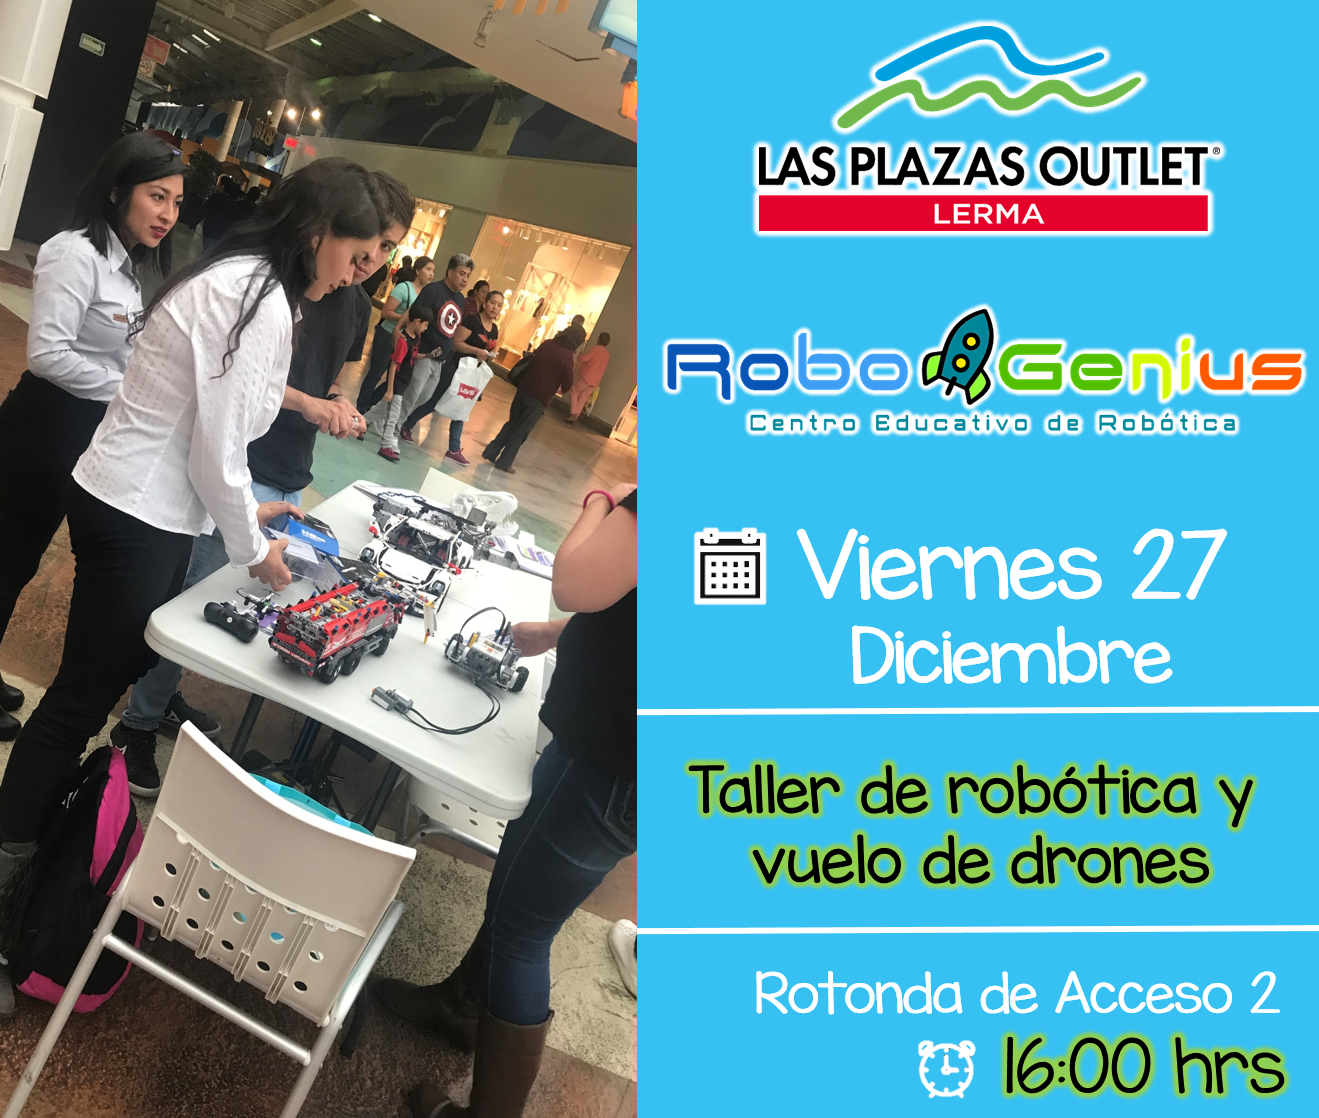 Las Plazas Outlet Lerma - Robo Genius